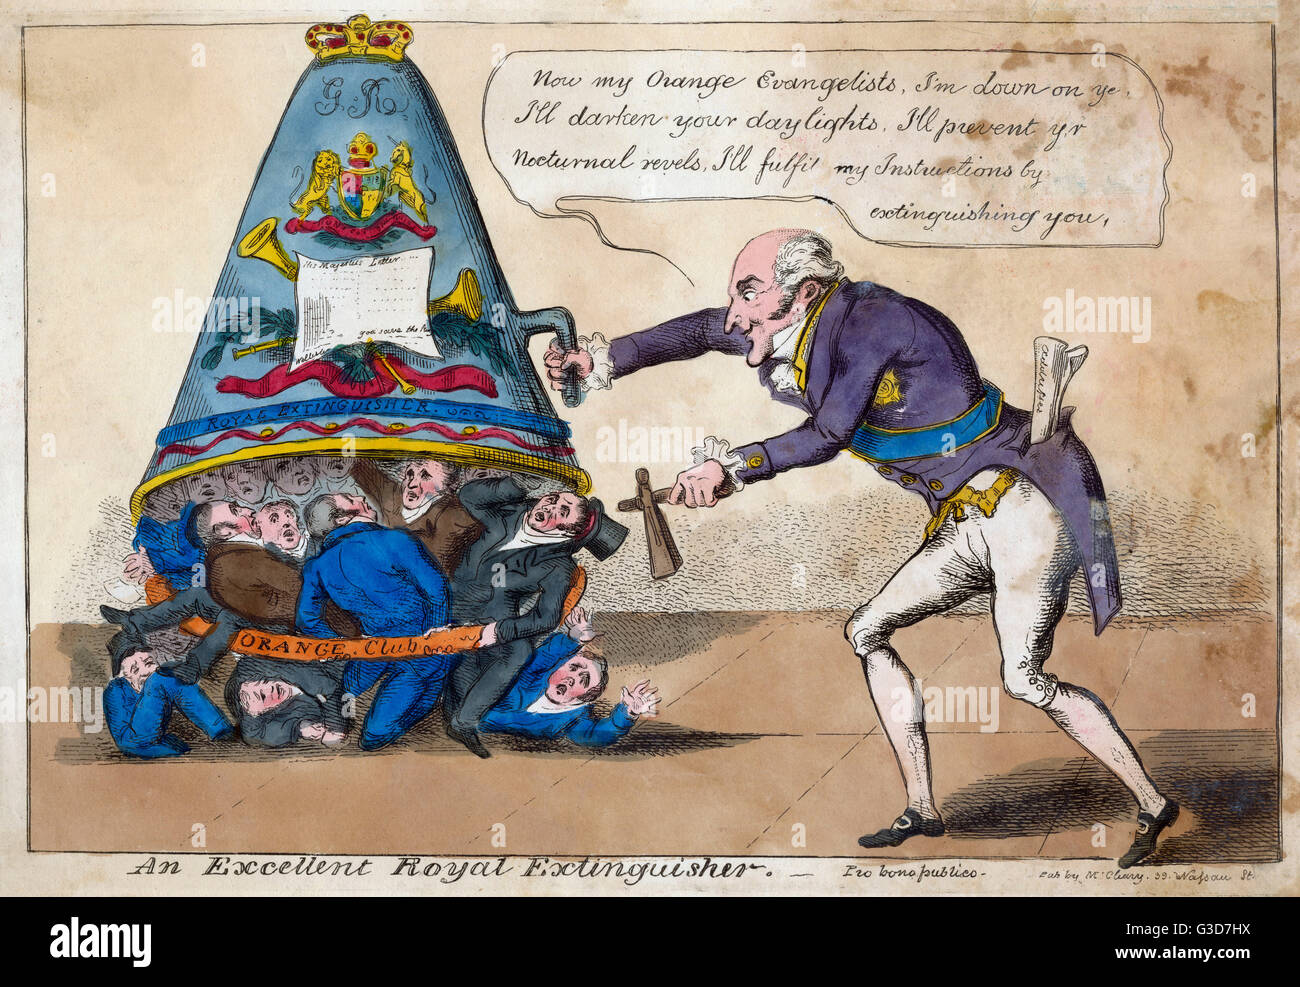 An Excellent Royal Extinguisher. Cartoon of Richard, 1st Marquess Wellesley, as Lord Lieutenant of Ireland, extinguishing - Stock Image